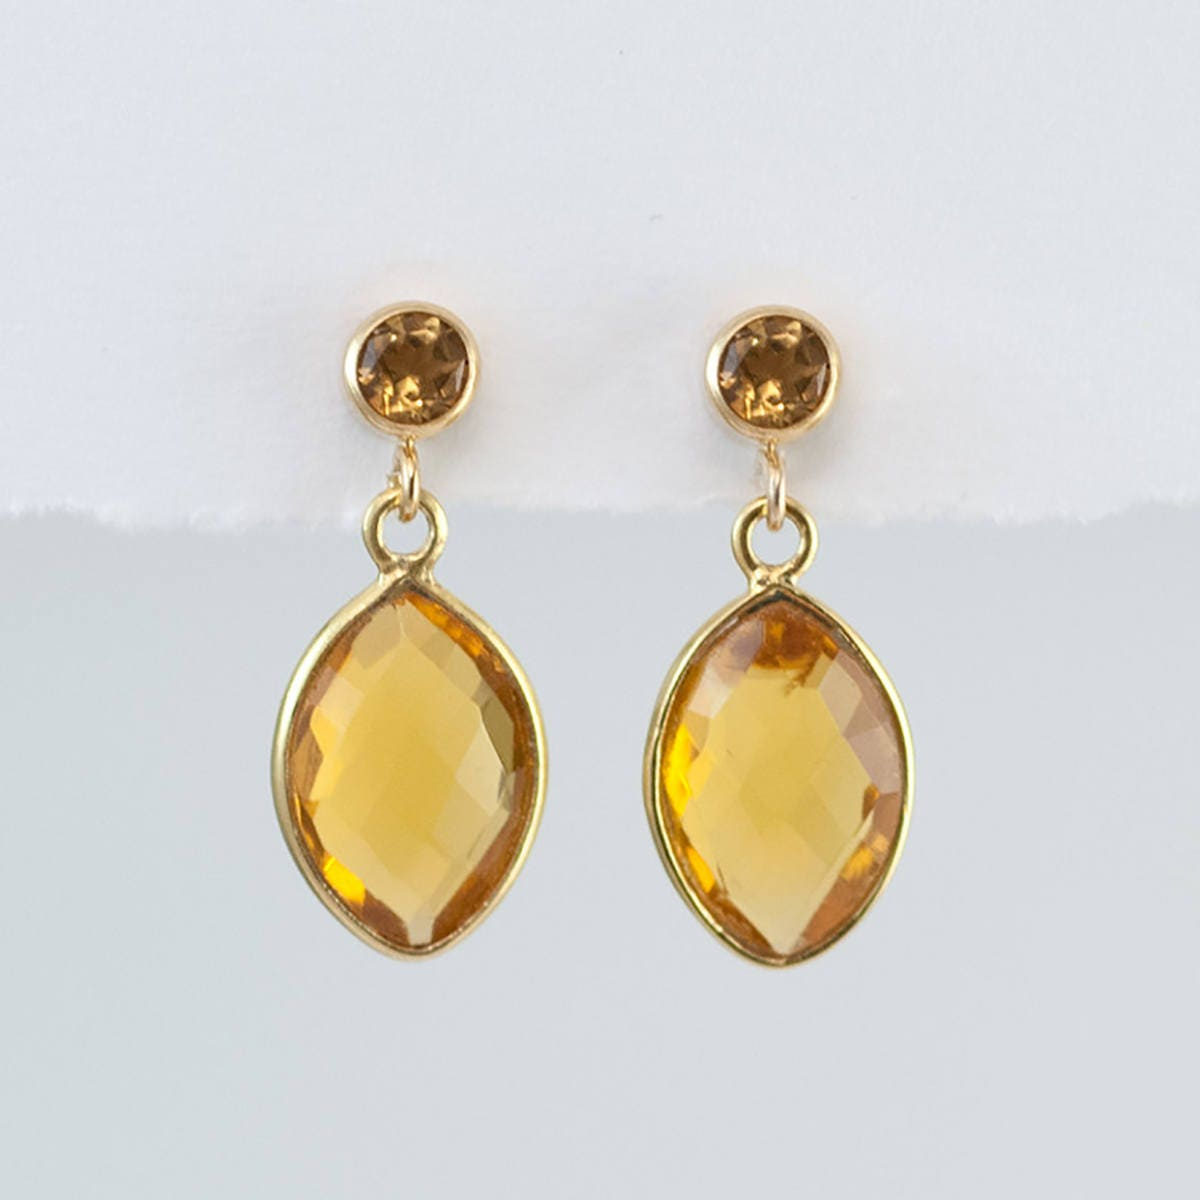 hoop s earrings pave image earring yellow diamond kt citrine itm is loading amp w gold charms dangle